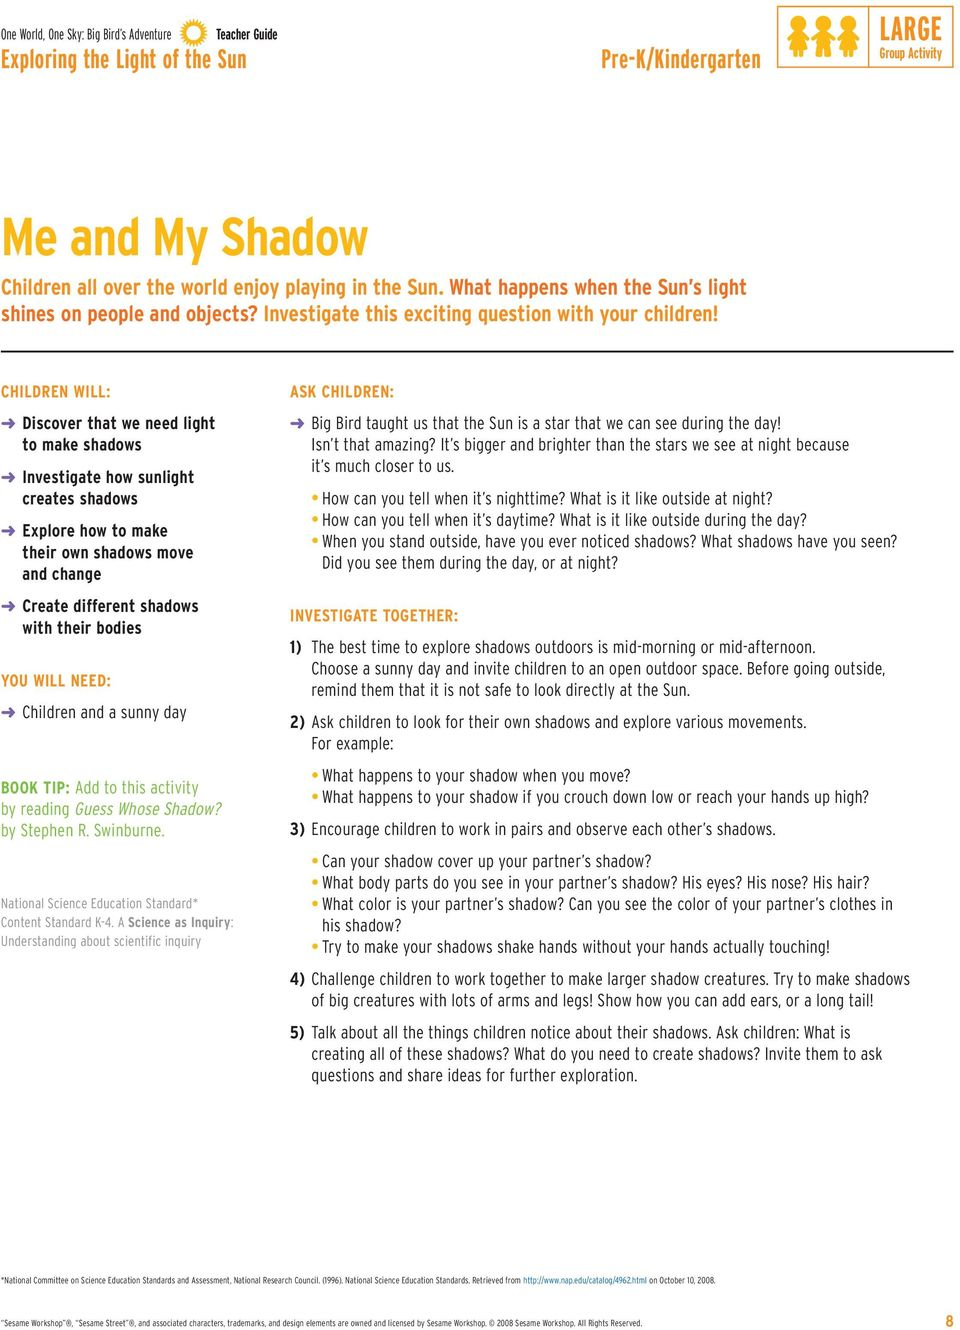 CHILDREN WILL: Discover that we need light to make shadows Investigate how sunlight creates shadows Explore how to make their own shadows move and change Create different shadows with their bodies